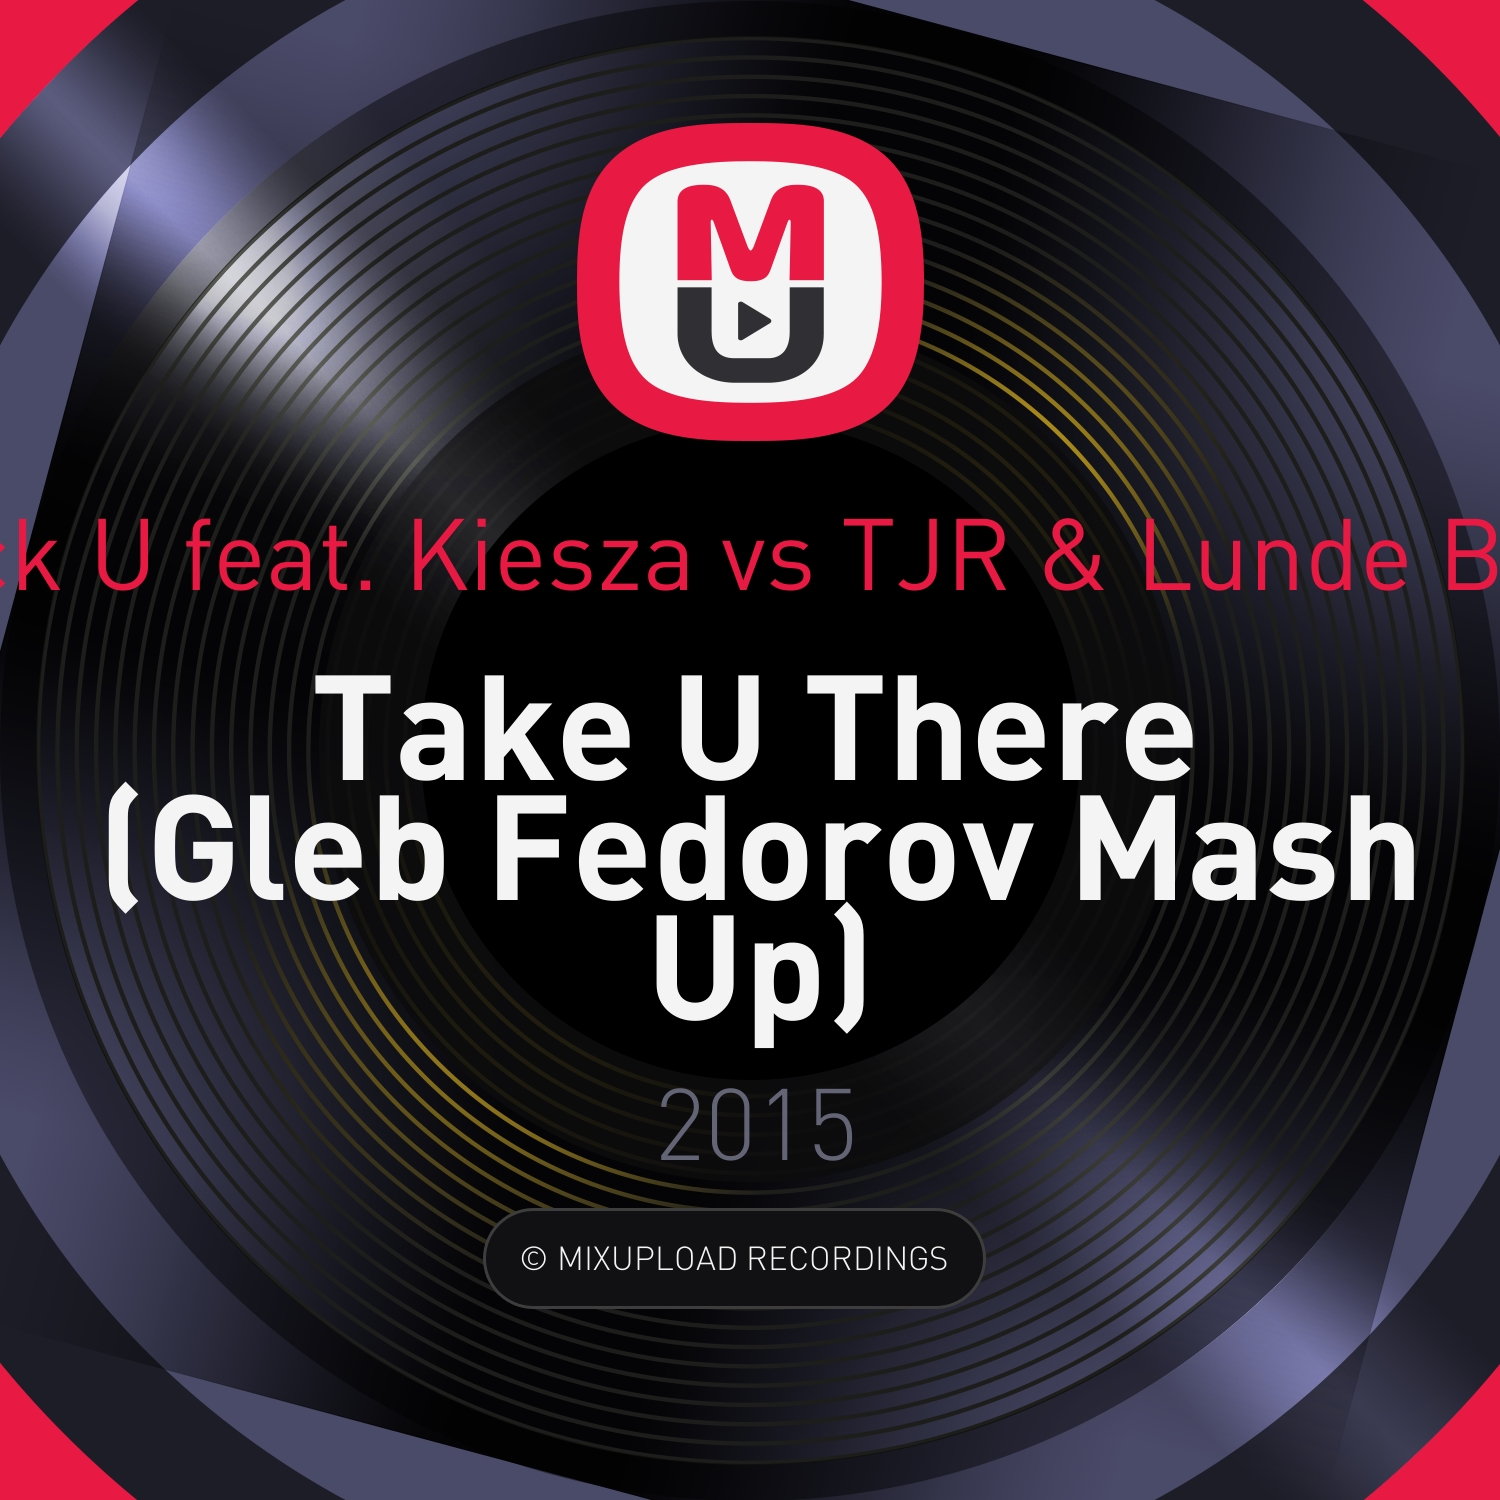 Jack U feat. Kiesza vs. TJR & Lunde Bros - Take U There (Gleb Fedorov Mash Up)